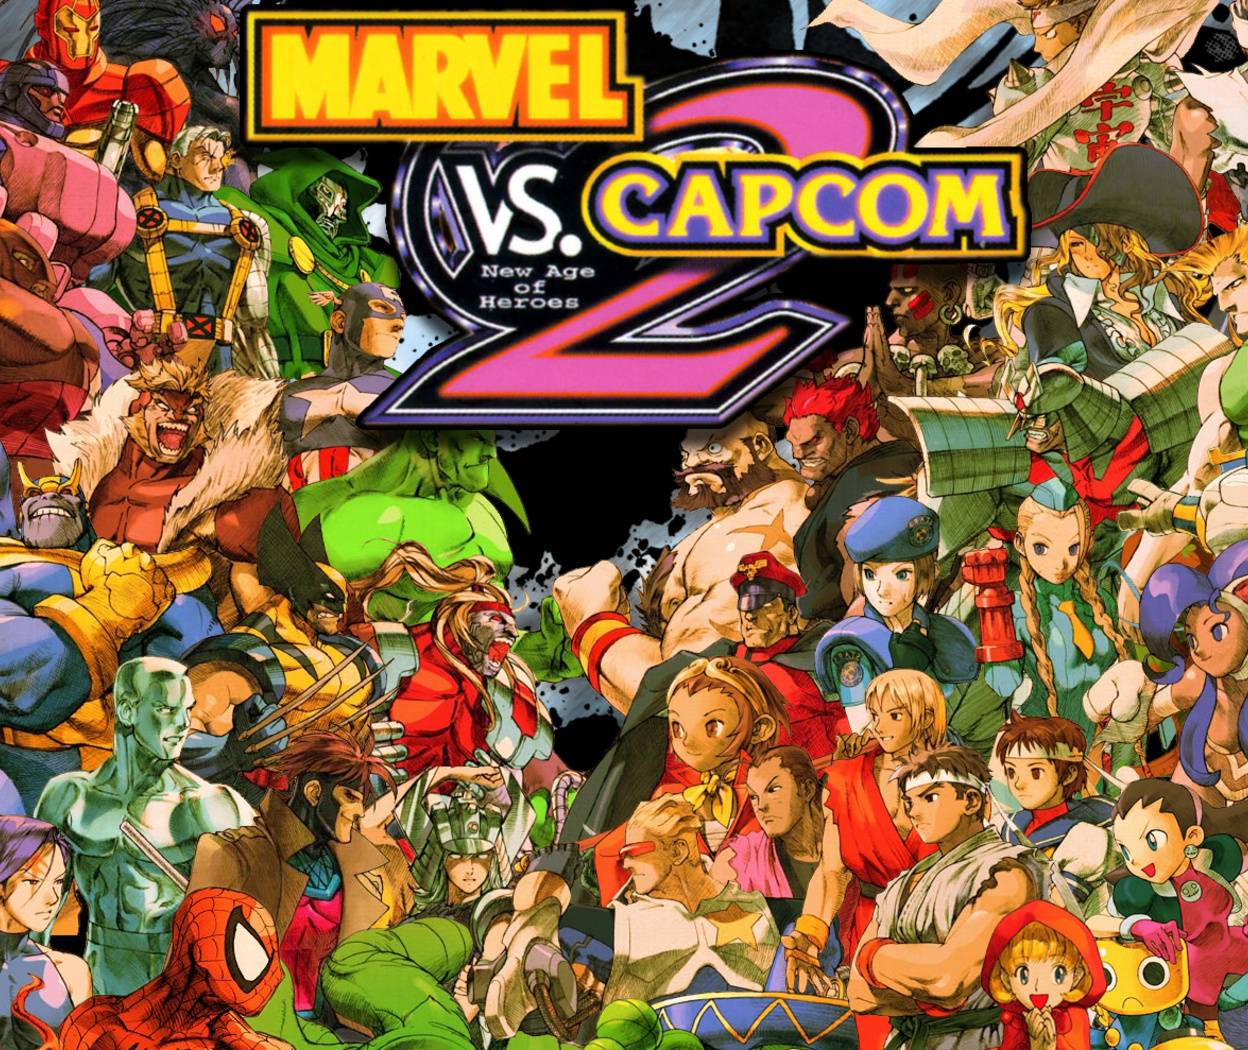 Marvel Vs Capcom 2 Wallpaper By Goliath77 Ee Free On Zedge